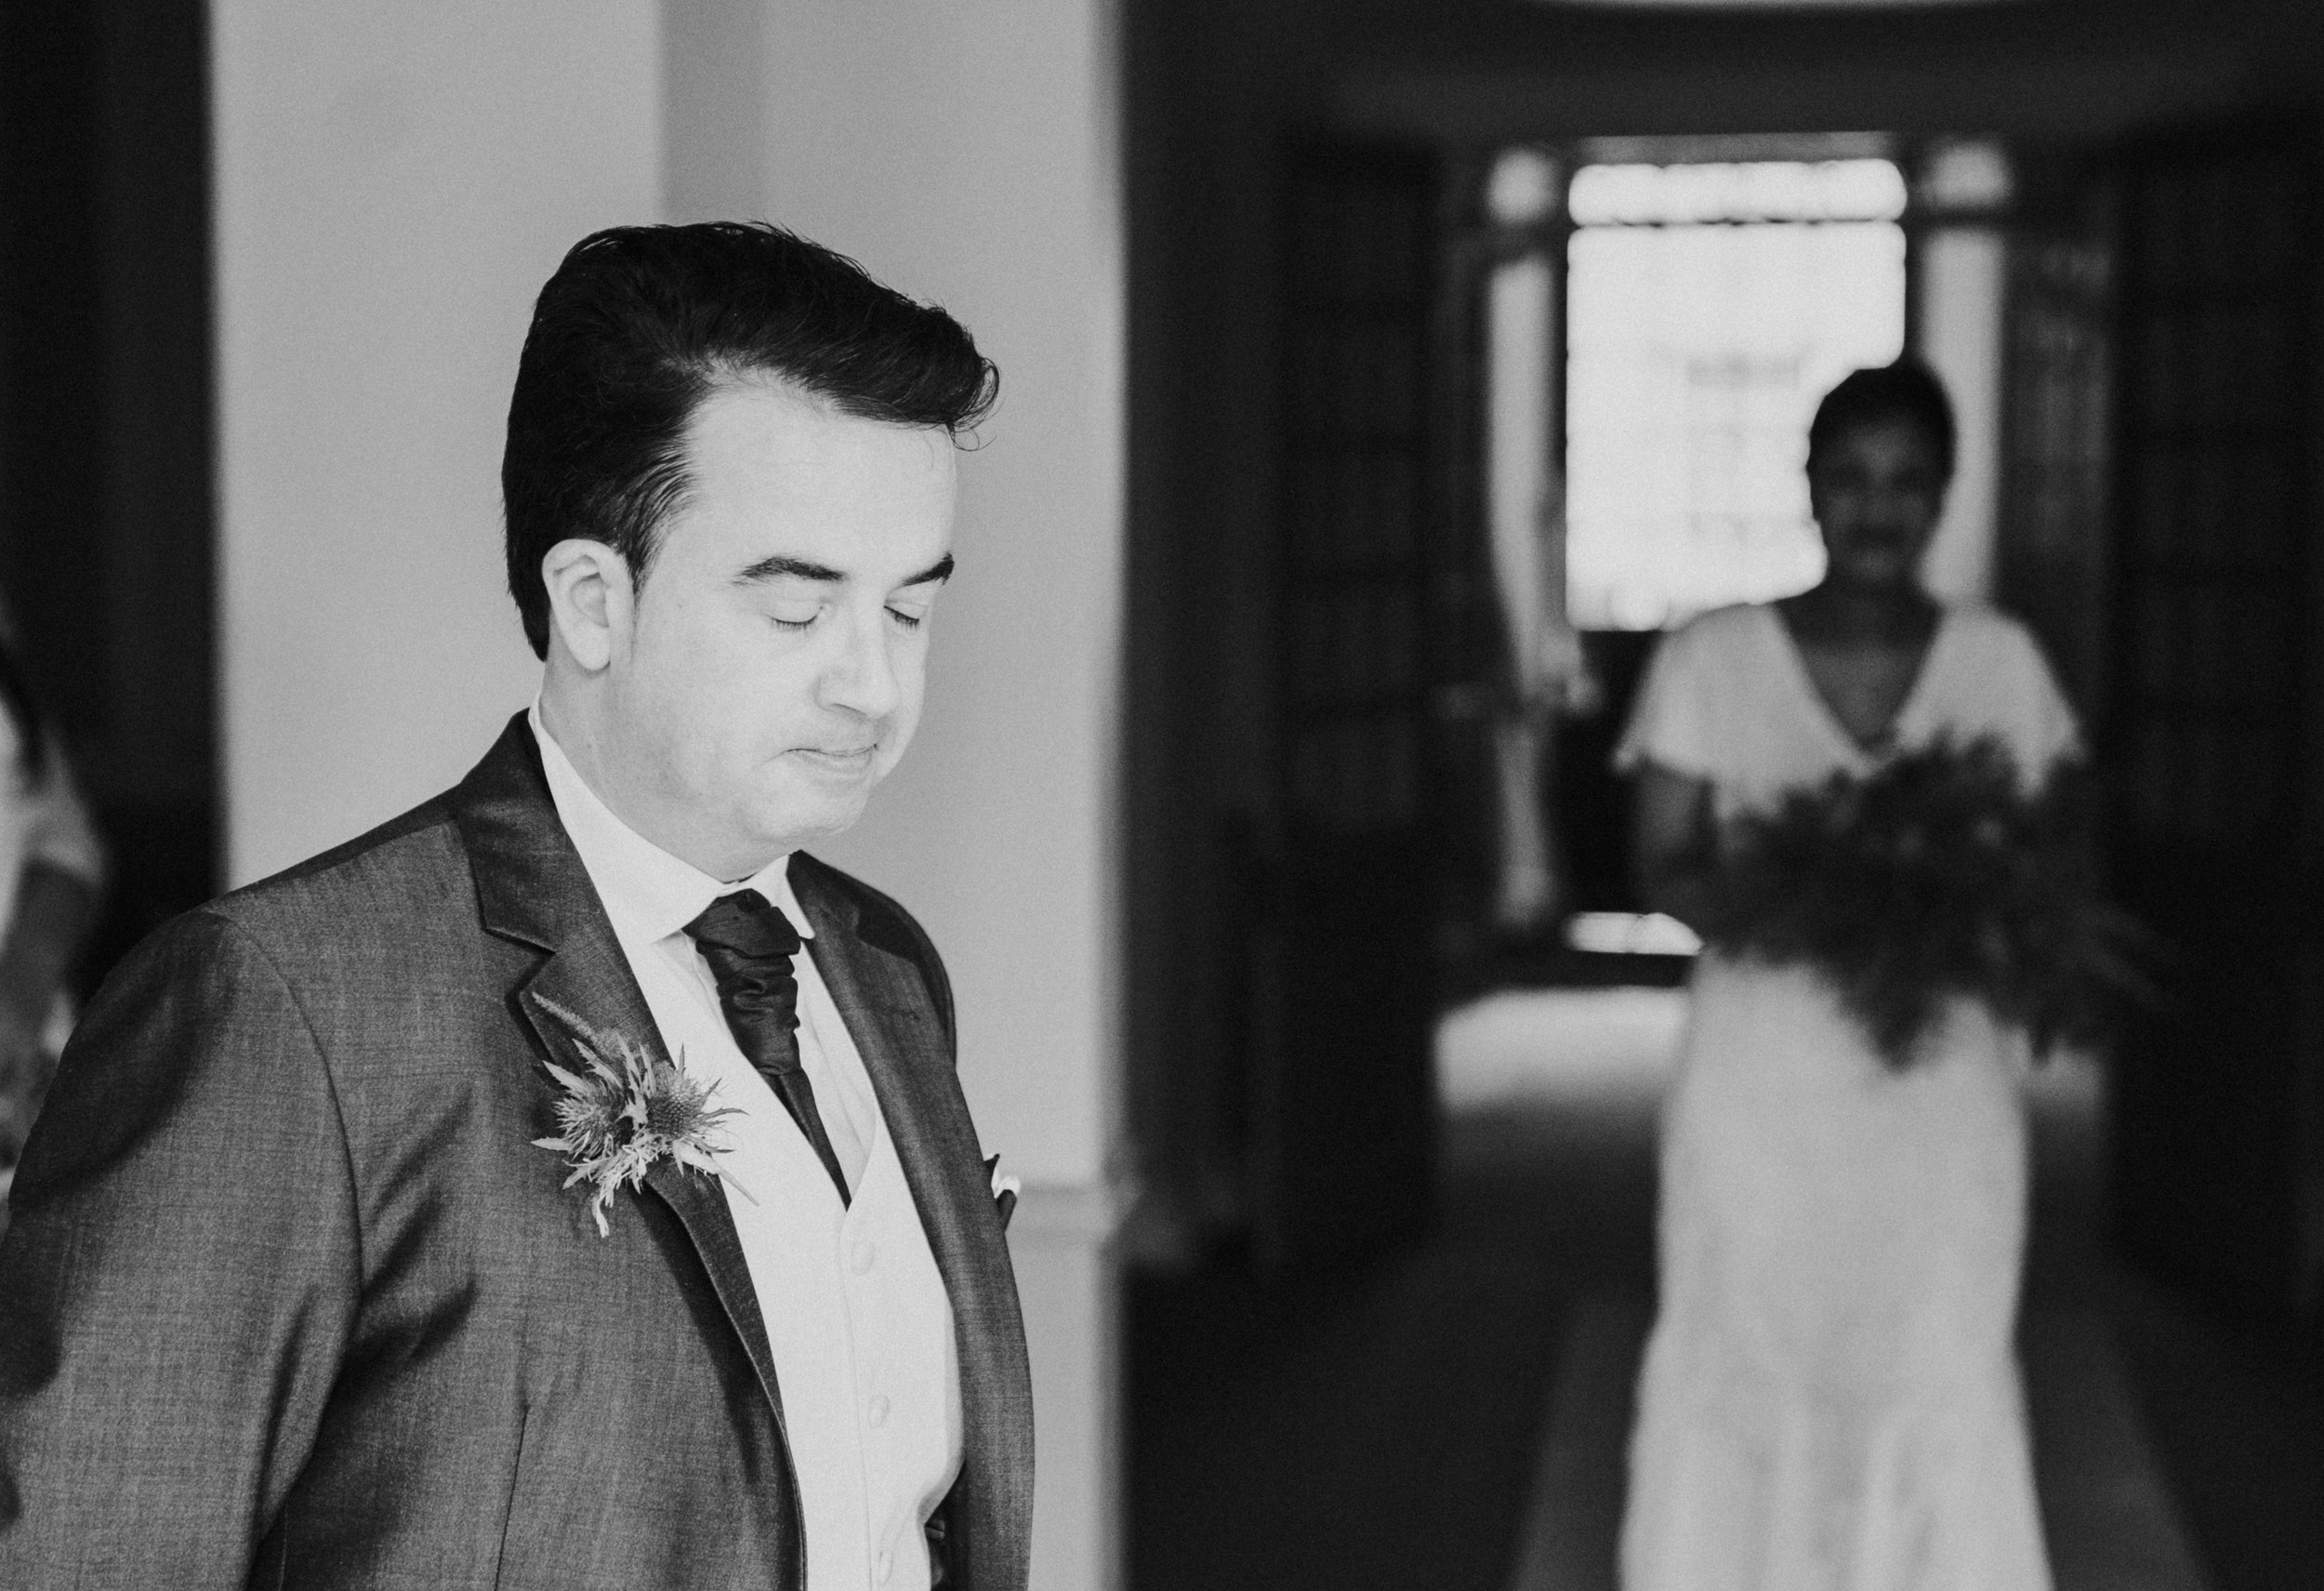 gorse-hill-hotel-wedding-photography-videography-surrey-london-23